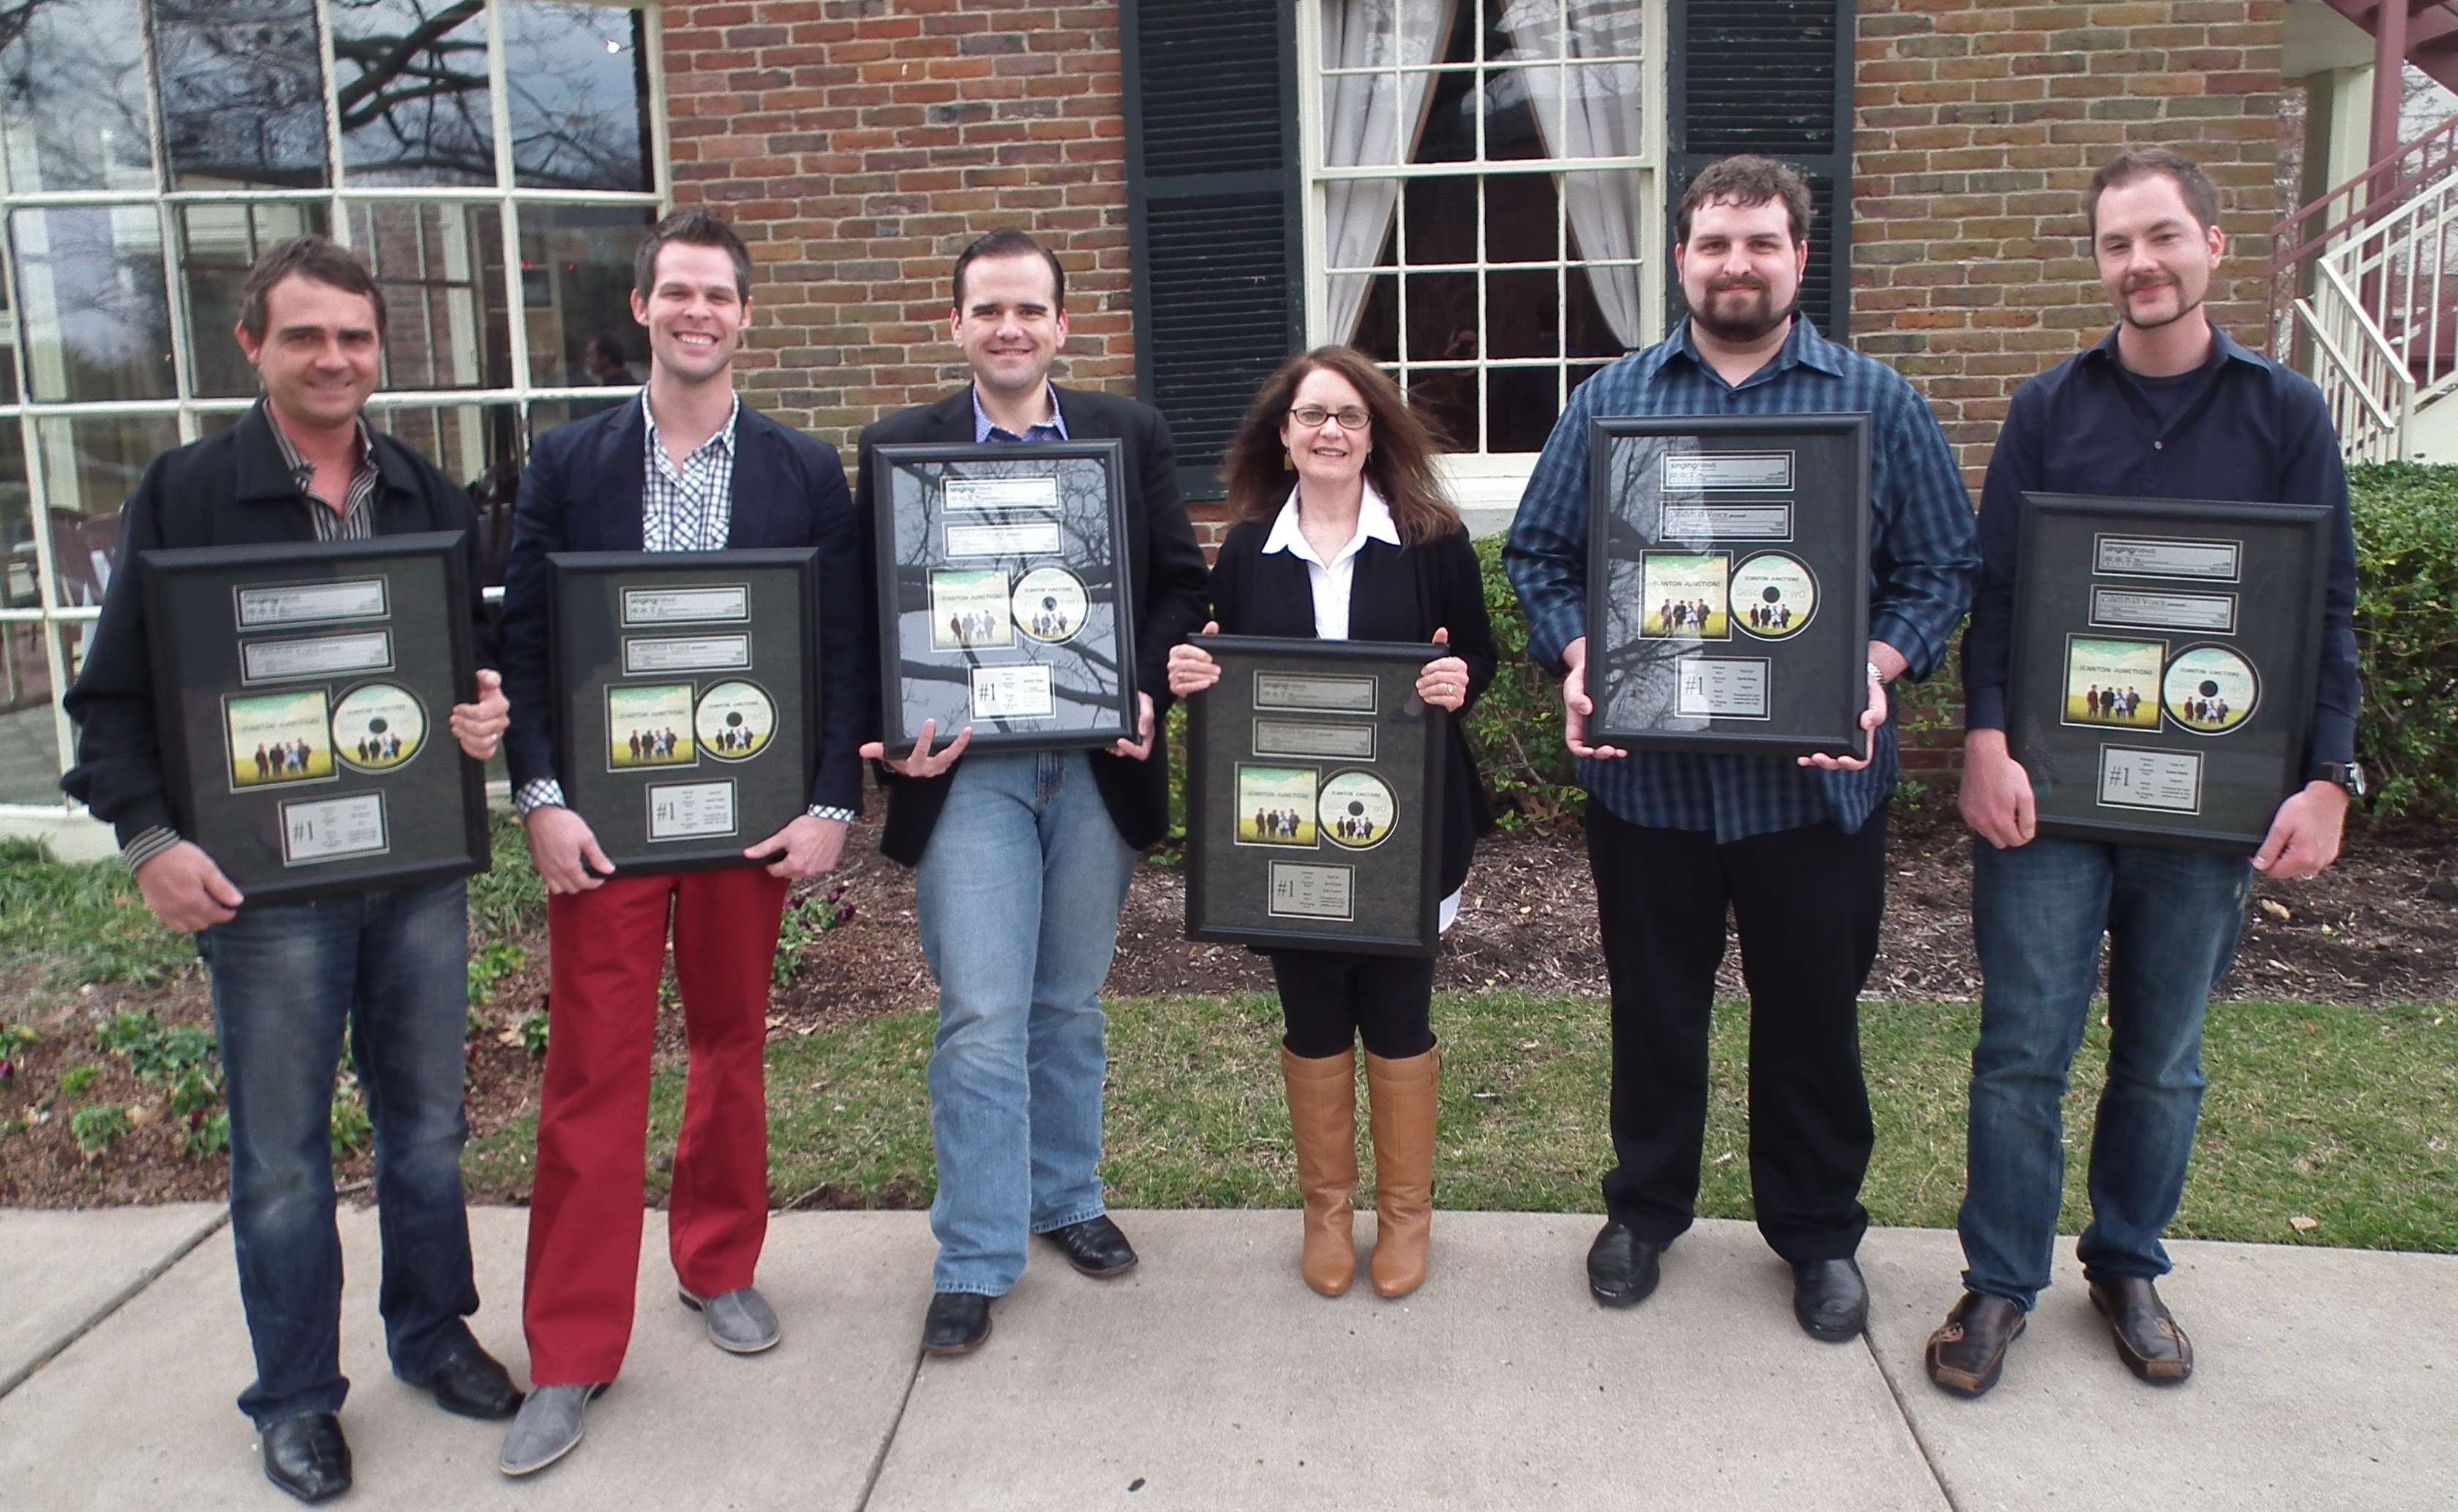 Canton_1photo